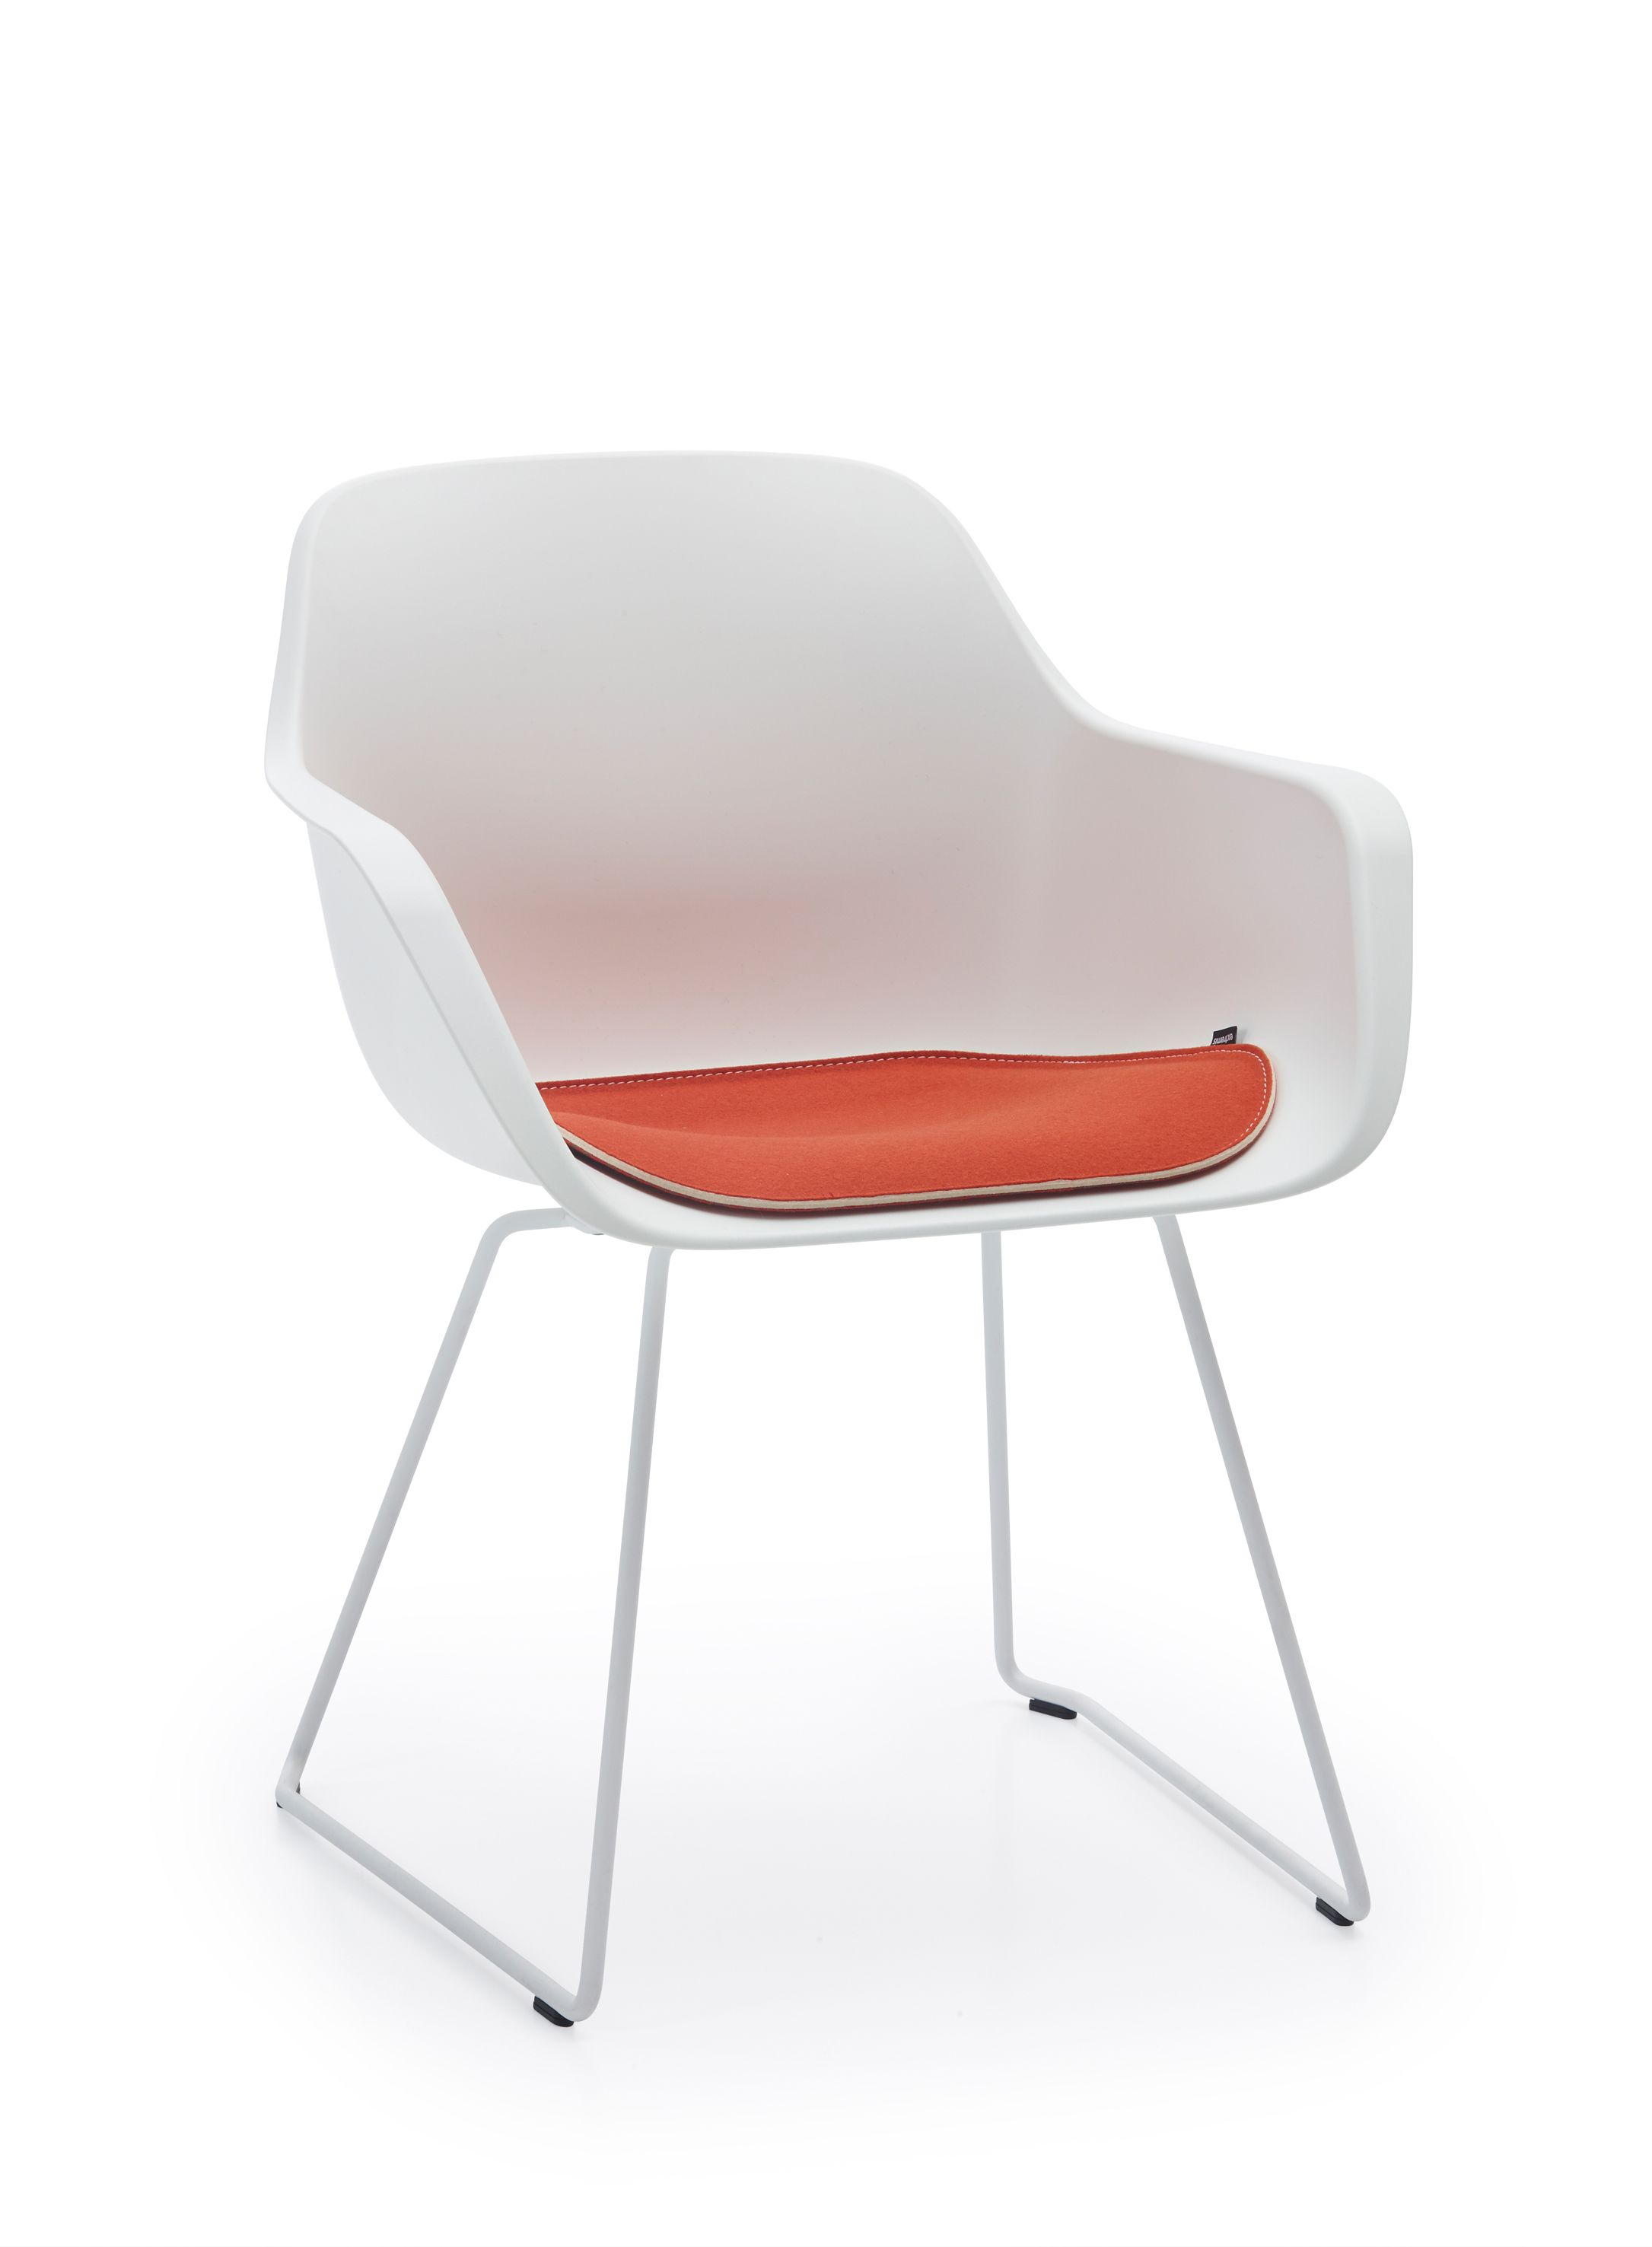 Captain\'s Sliding chair with optional cushion (orange) by Extremis ...